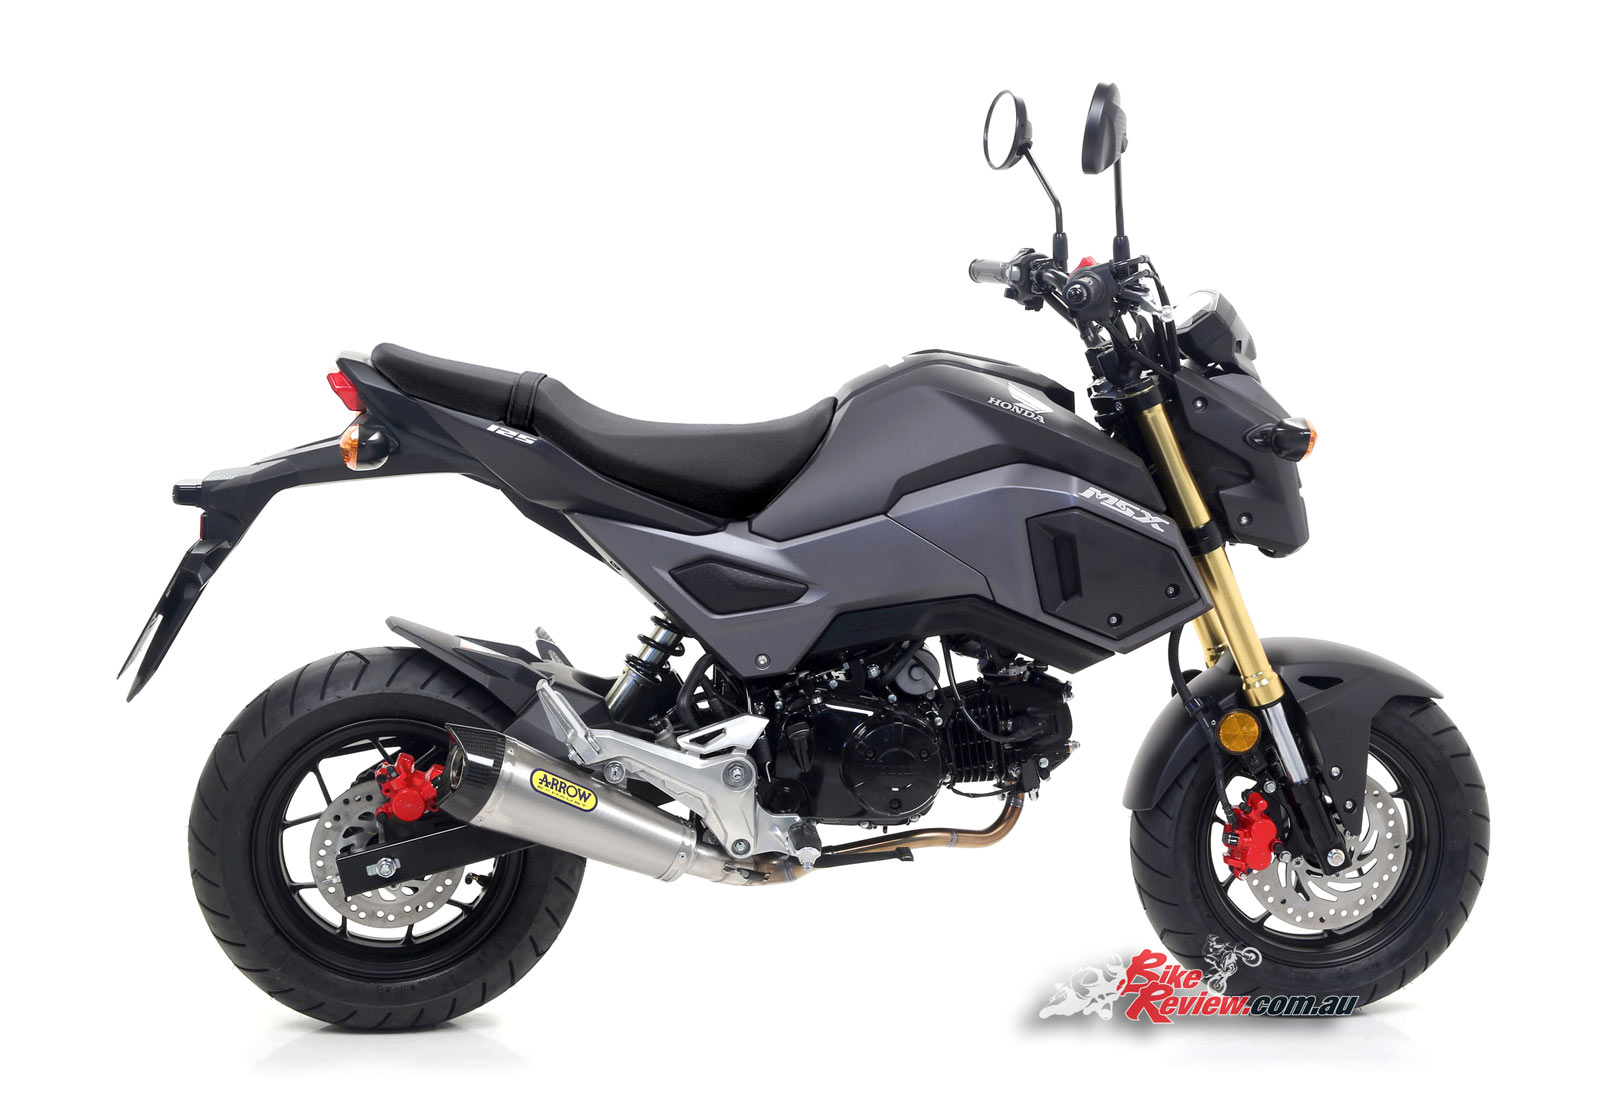 Honda Grom Review >> New Product: Full Arrow Exhaust for Honda Grom - Bike Review